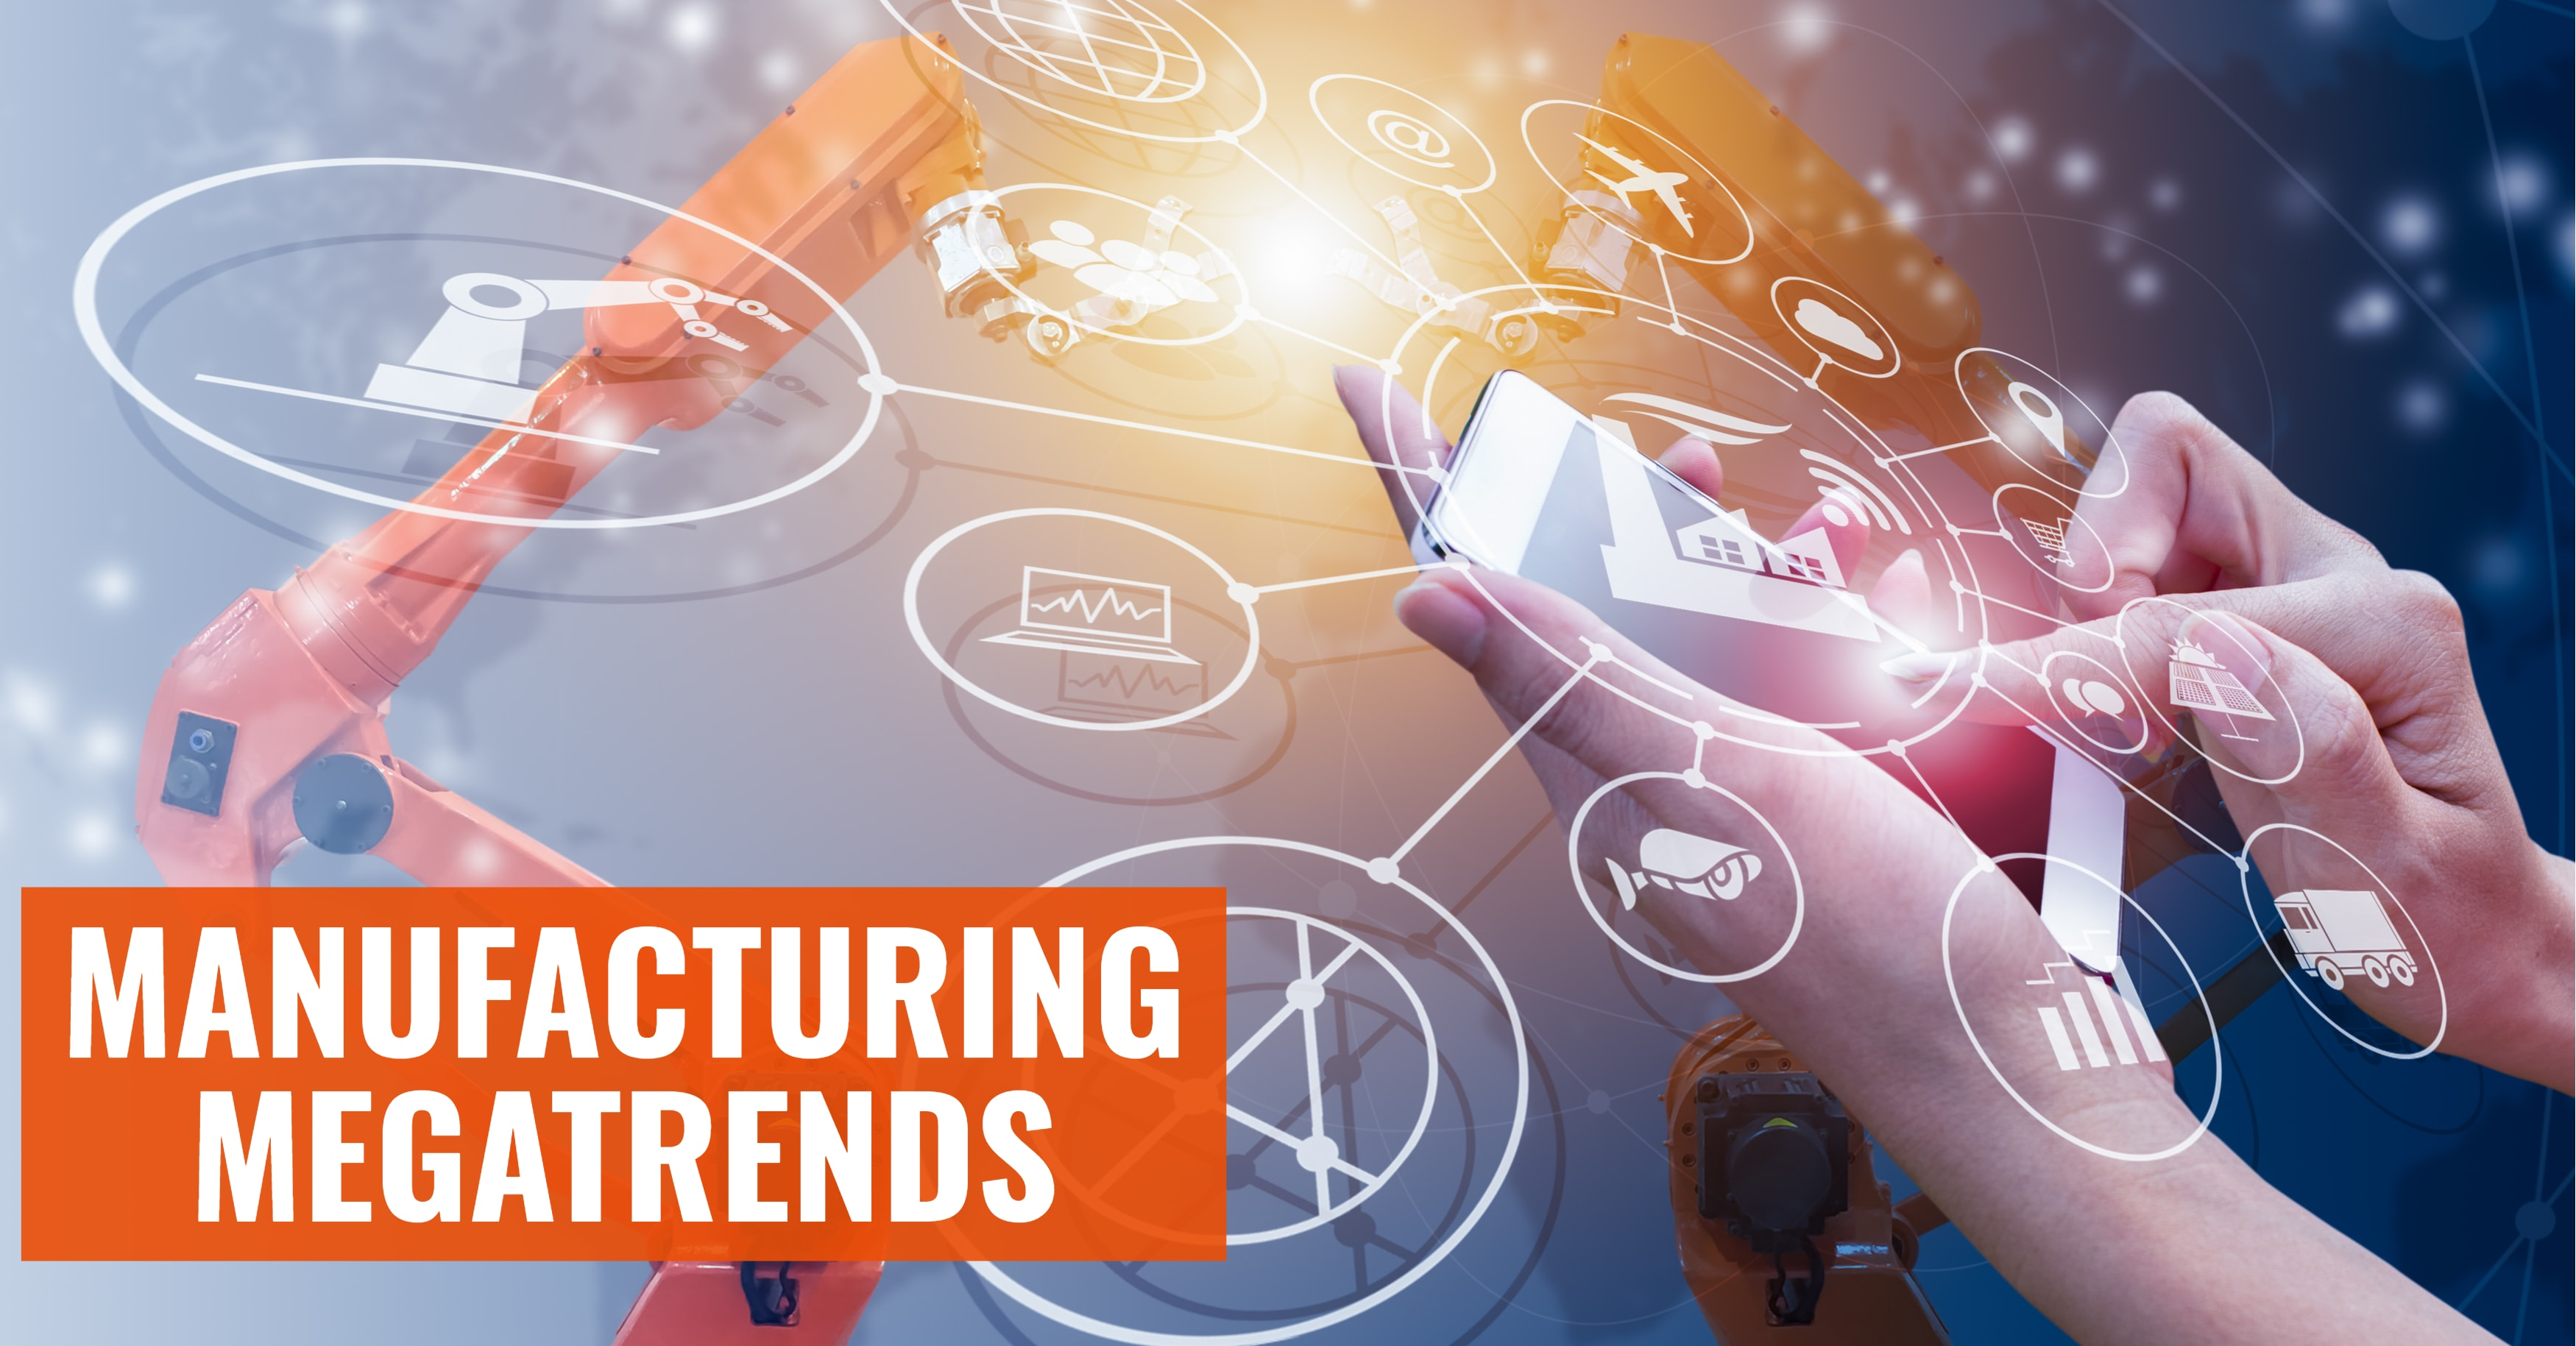 How Will ERP Help Manufacturers Face Megatrends?